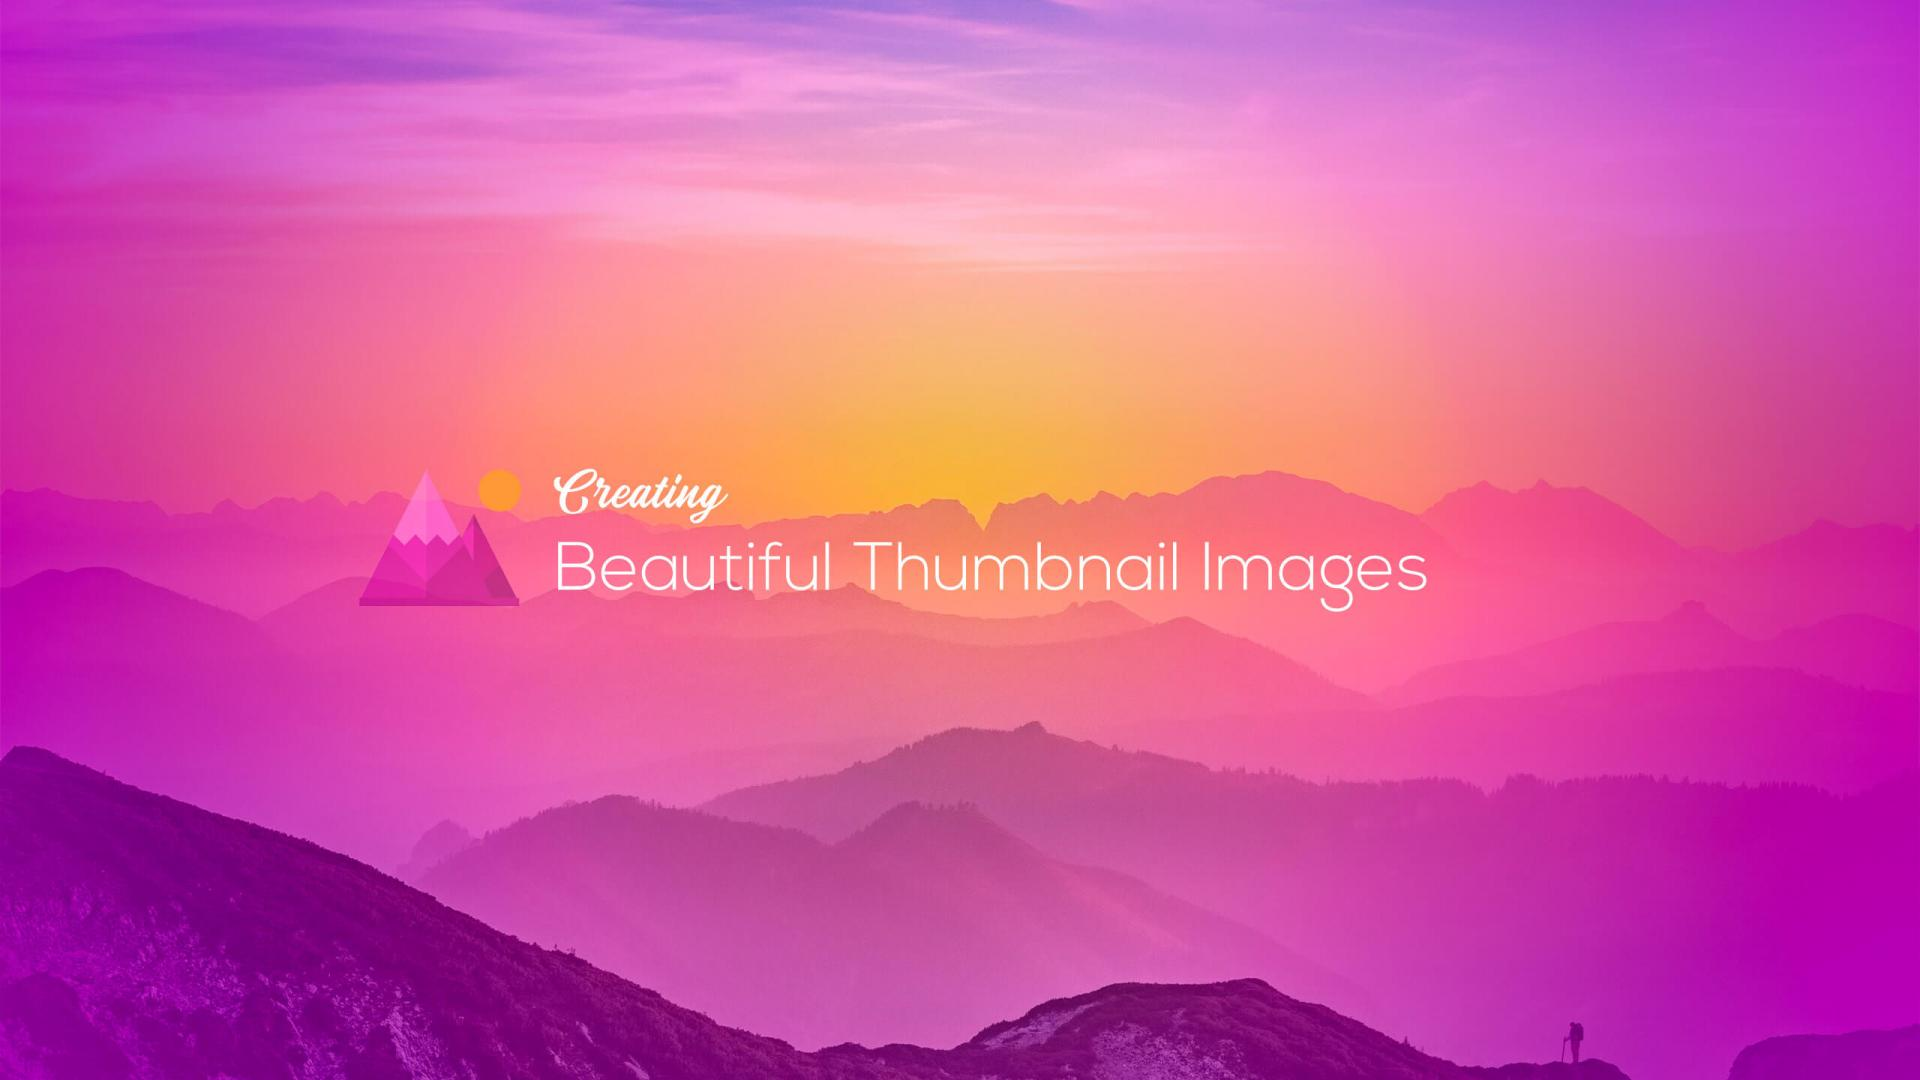 Creating Beautiful Thumbnail Images